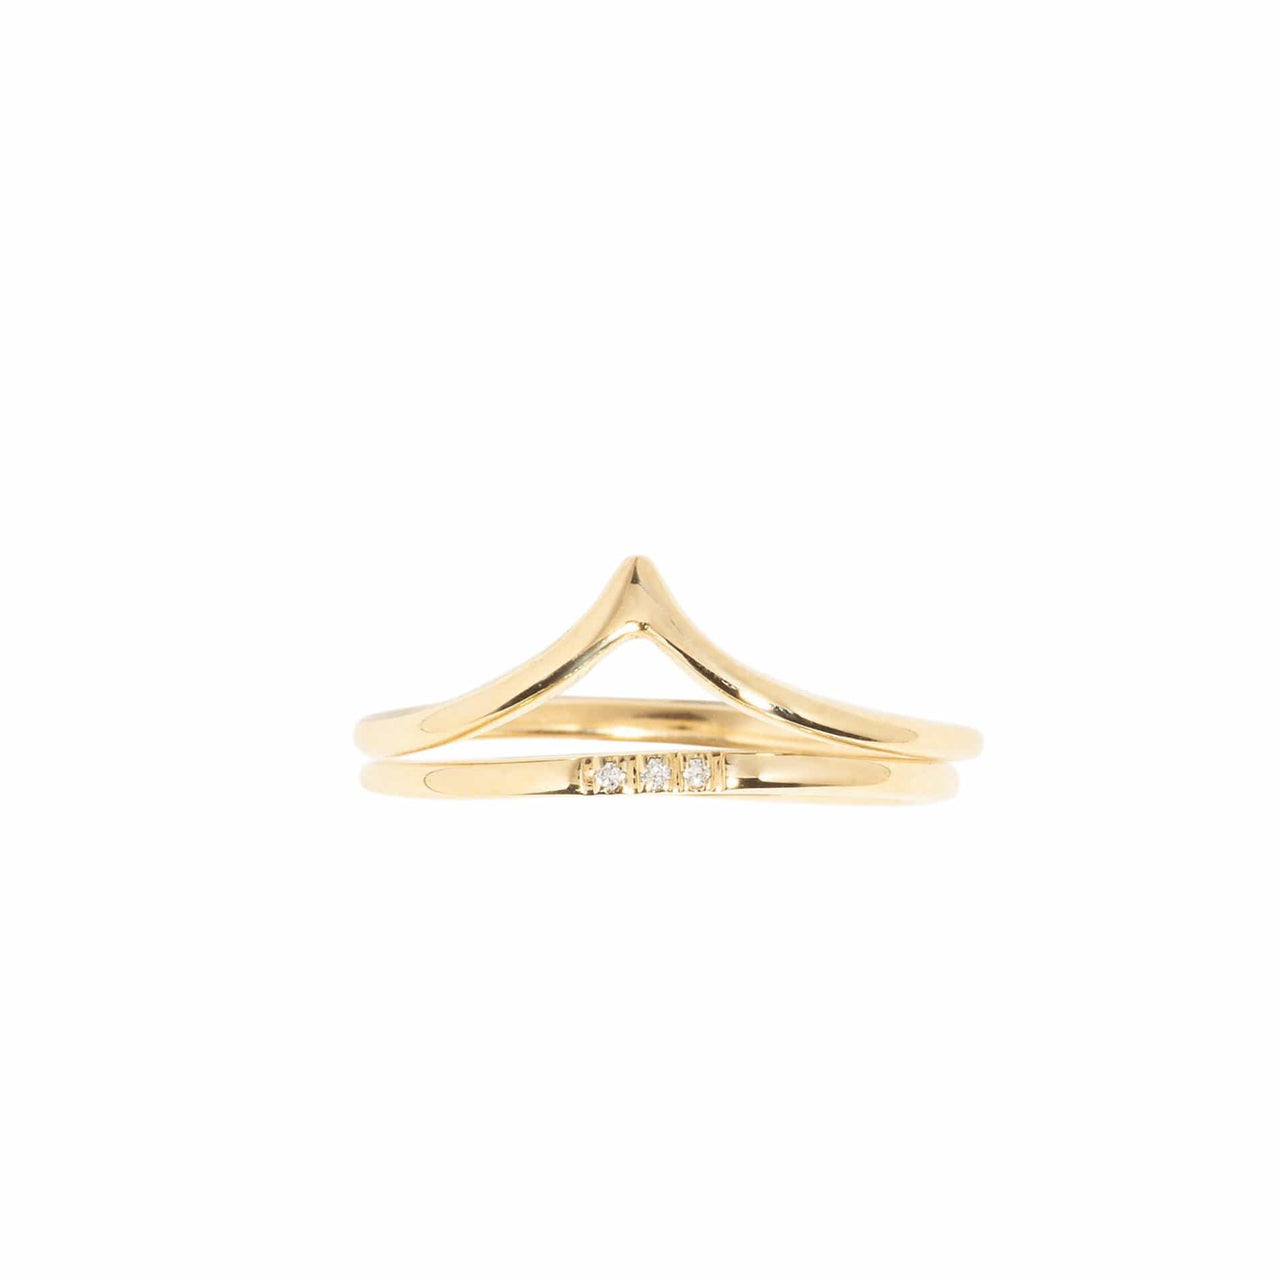 AMARILO Rings Peak Ring Set